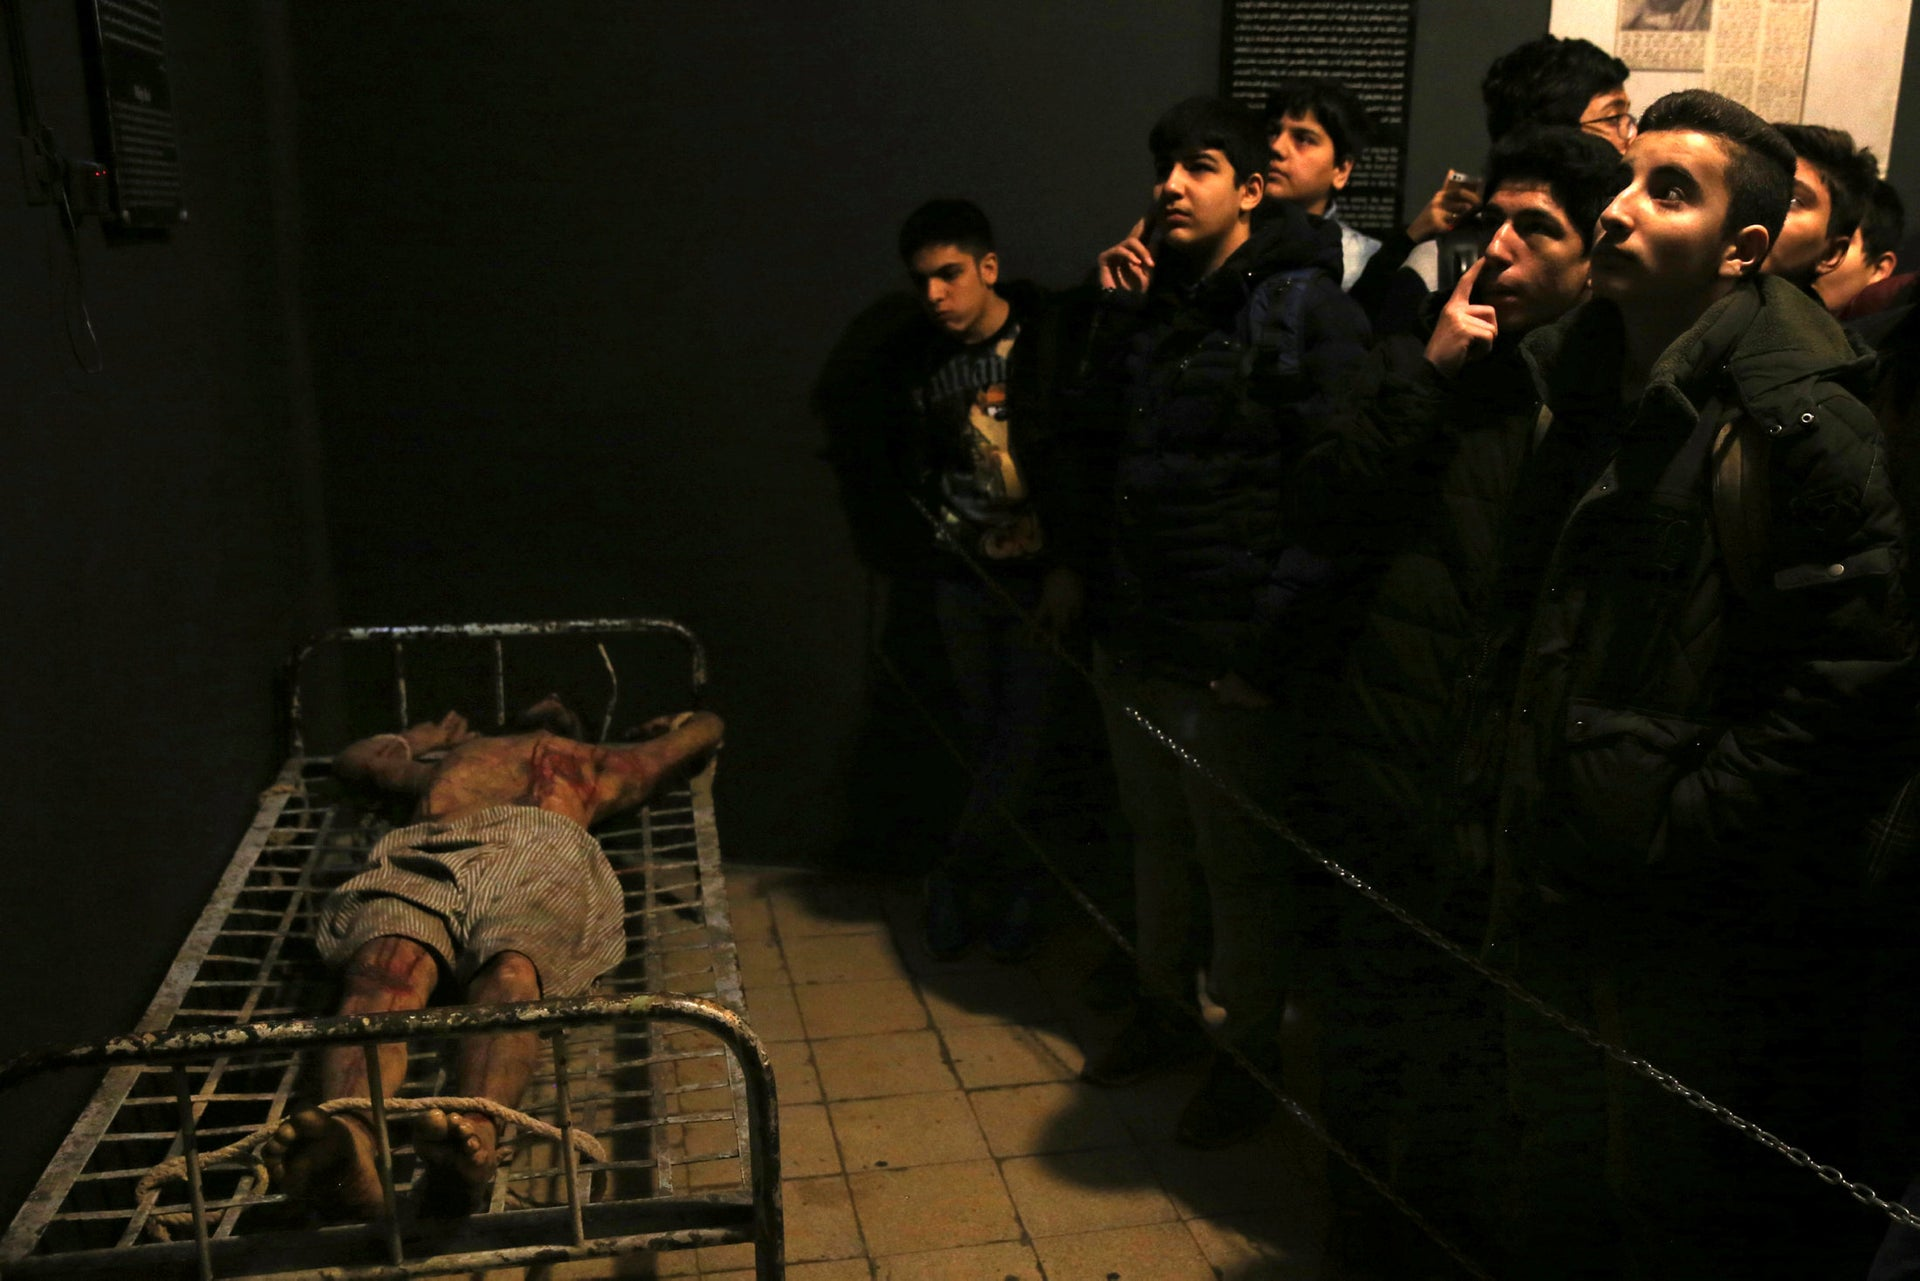 Iranian schoolboys look looks at an exhibition at a former prison, where a wax mannequin of a prisoner is tied to a bed, in Tehran, Iran, January 7, 2019.